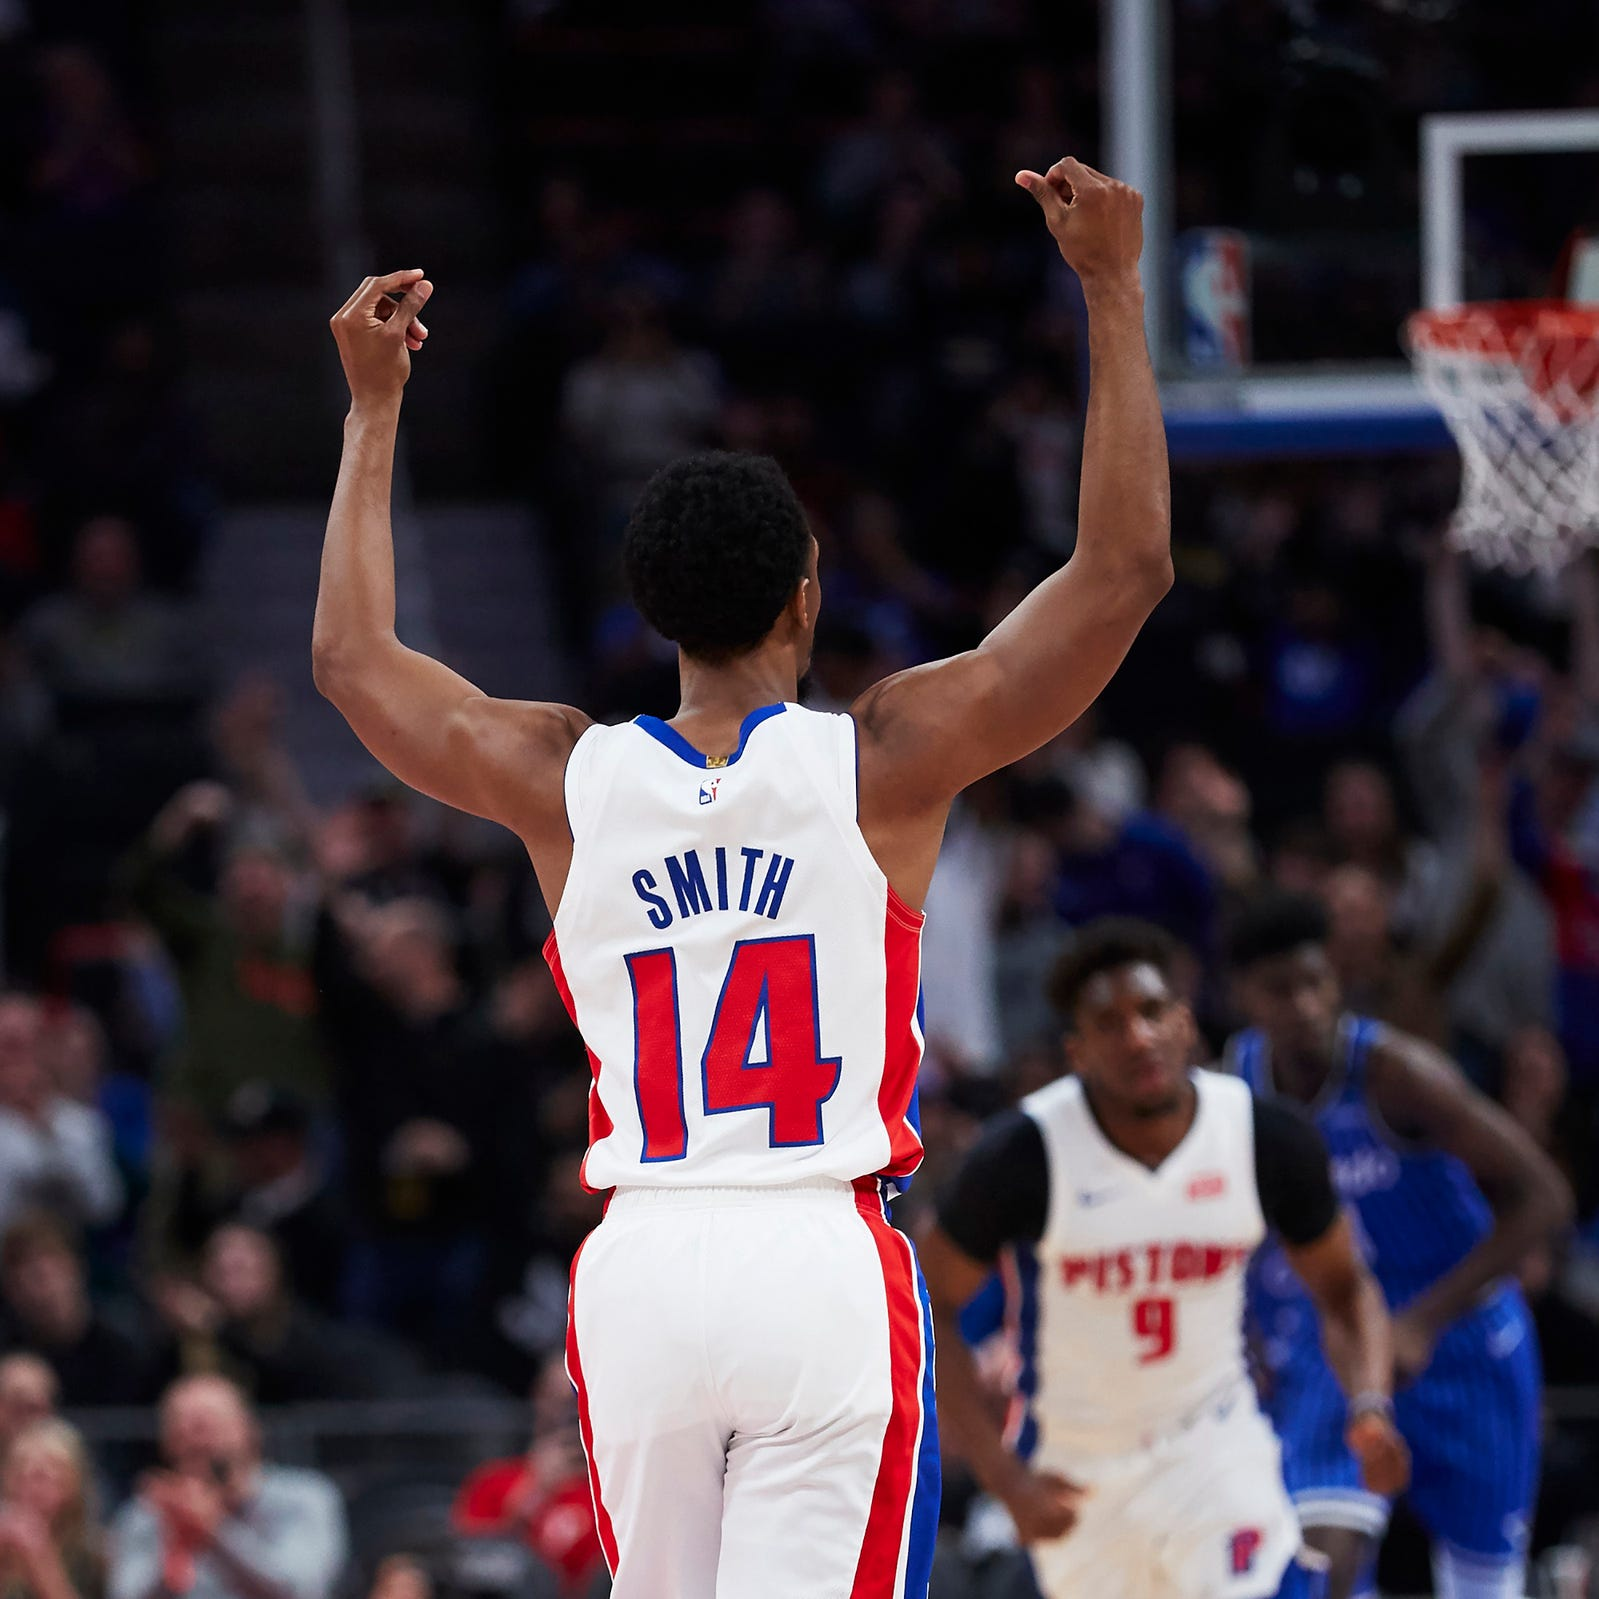 Wayne Ellington, Ish Smith will be free agents. Detroit Pistons need them back